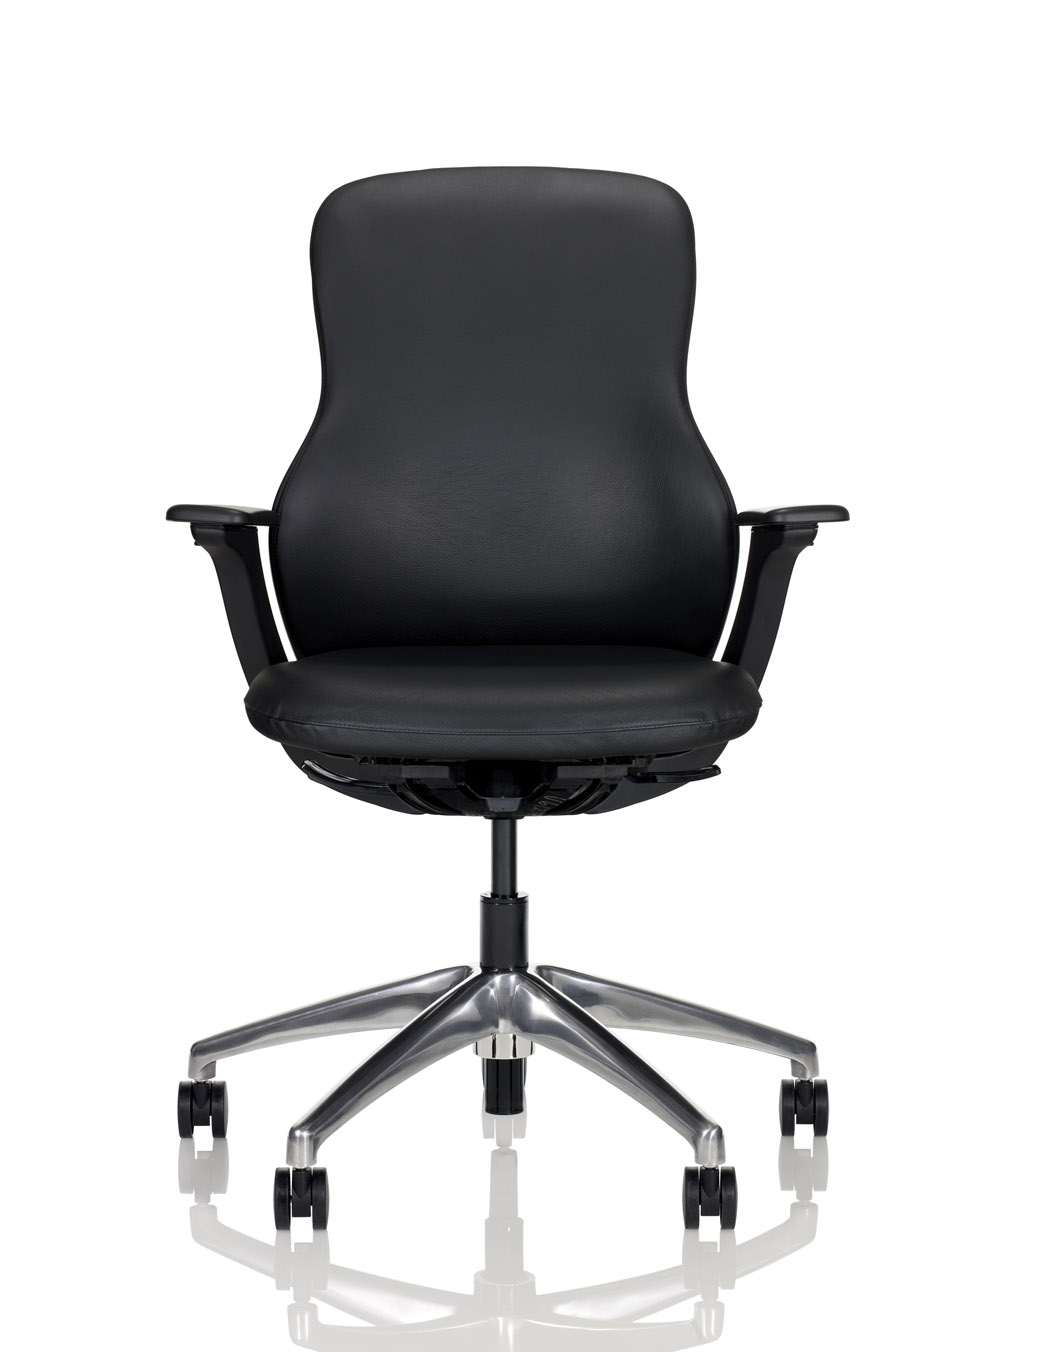 knoll generation task chair office adjustable arms regeneration by fully upholstered ergonomic